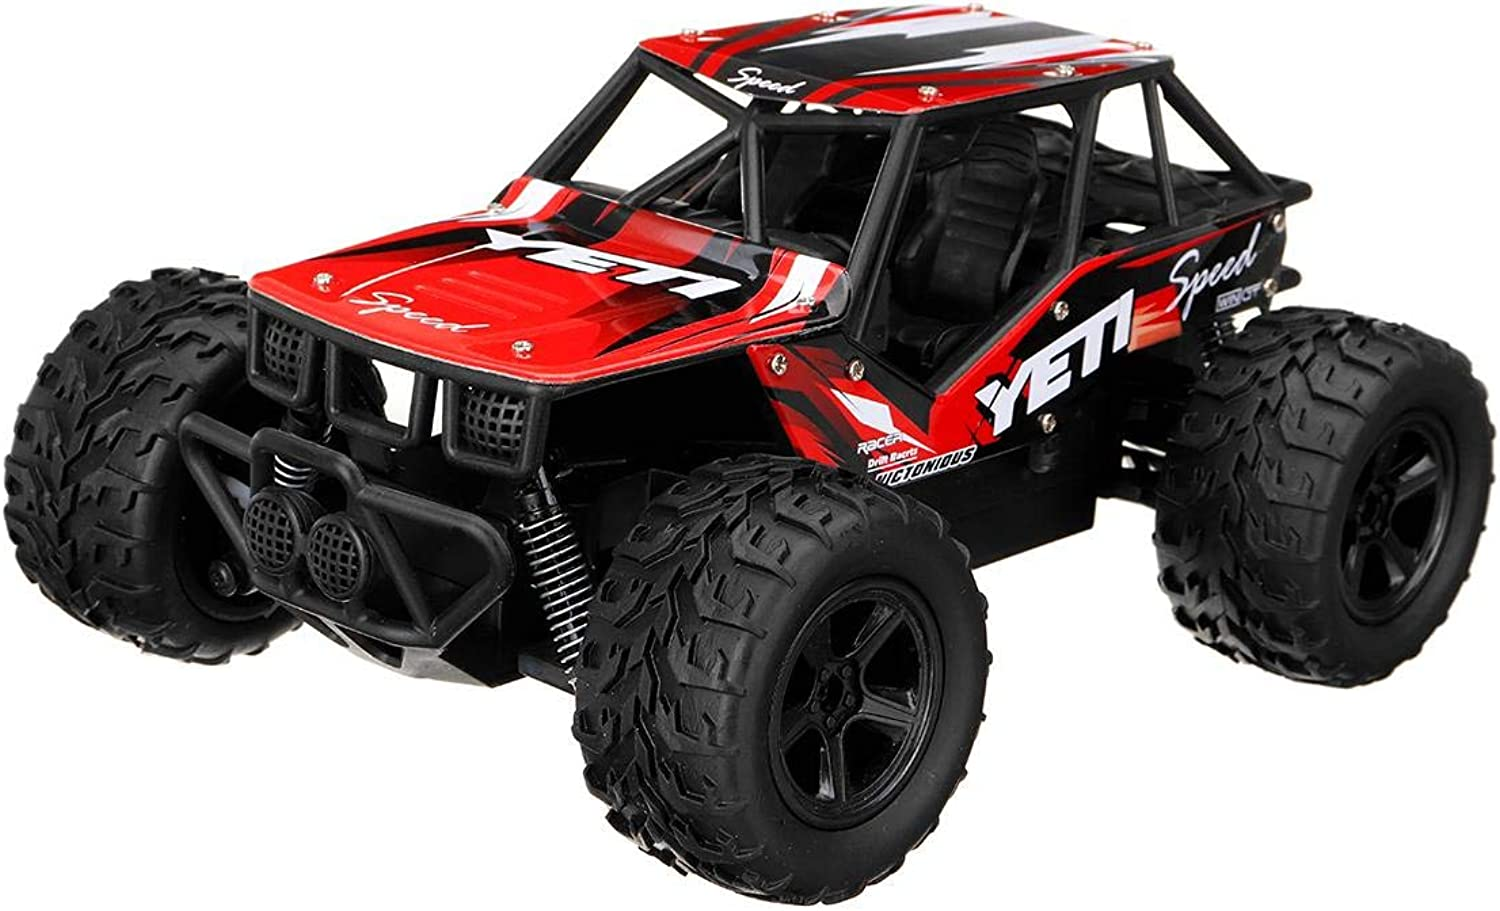 Generic Remote Control RC Cars Toys 48KM H 1 20 2.4G Aluminum OffRoad VehicleTruck Climbing Car Toys for Boys Kids Gift Red